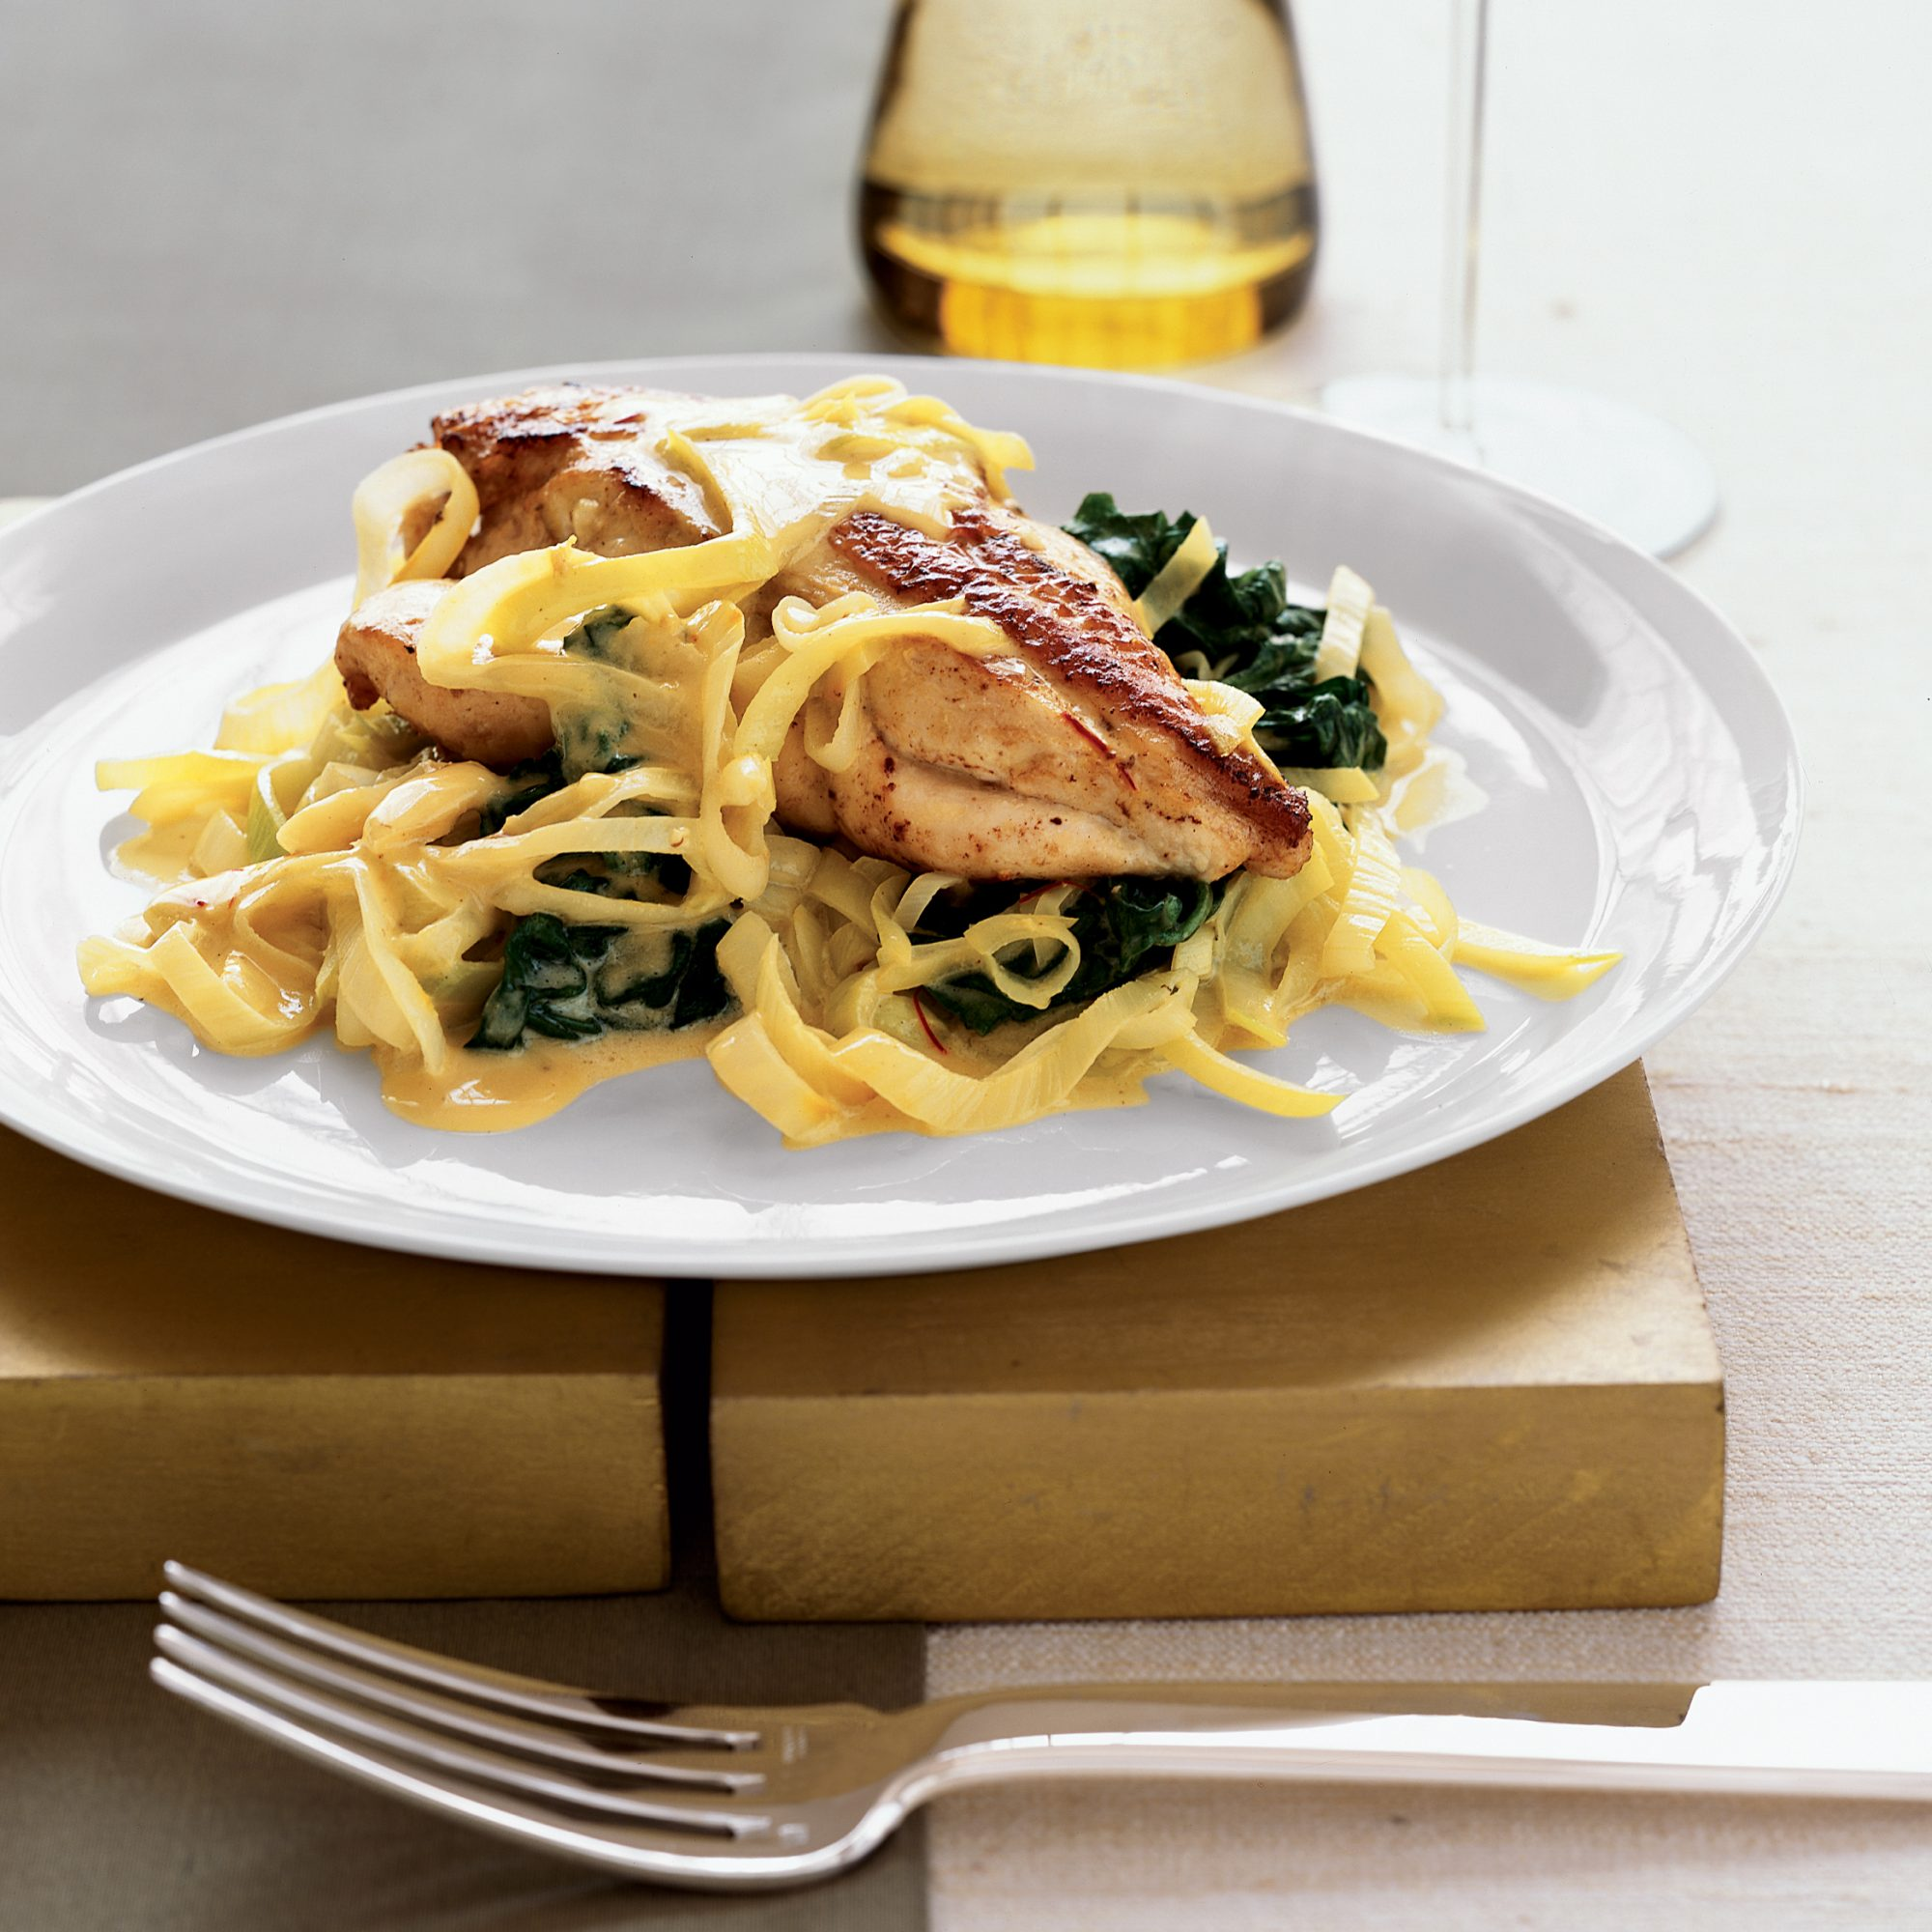 Chicken Breasts With Spinach Leek And Saffron Sauce Recipe Marcia Kiesel Food Amp Wine